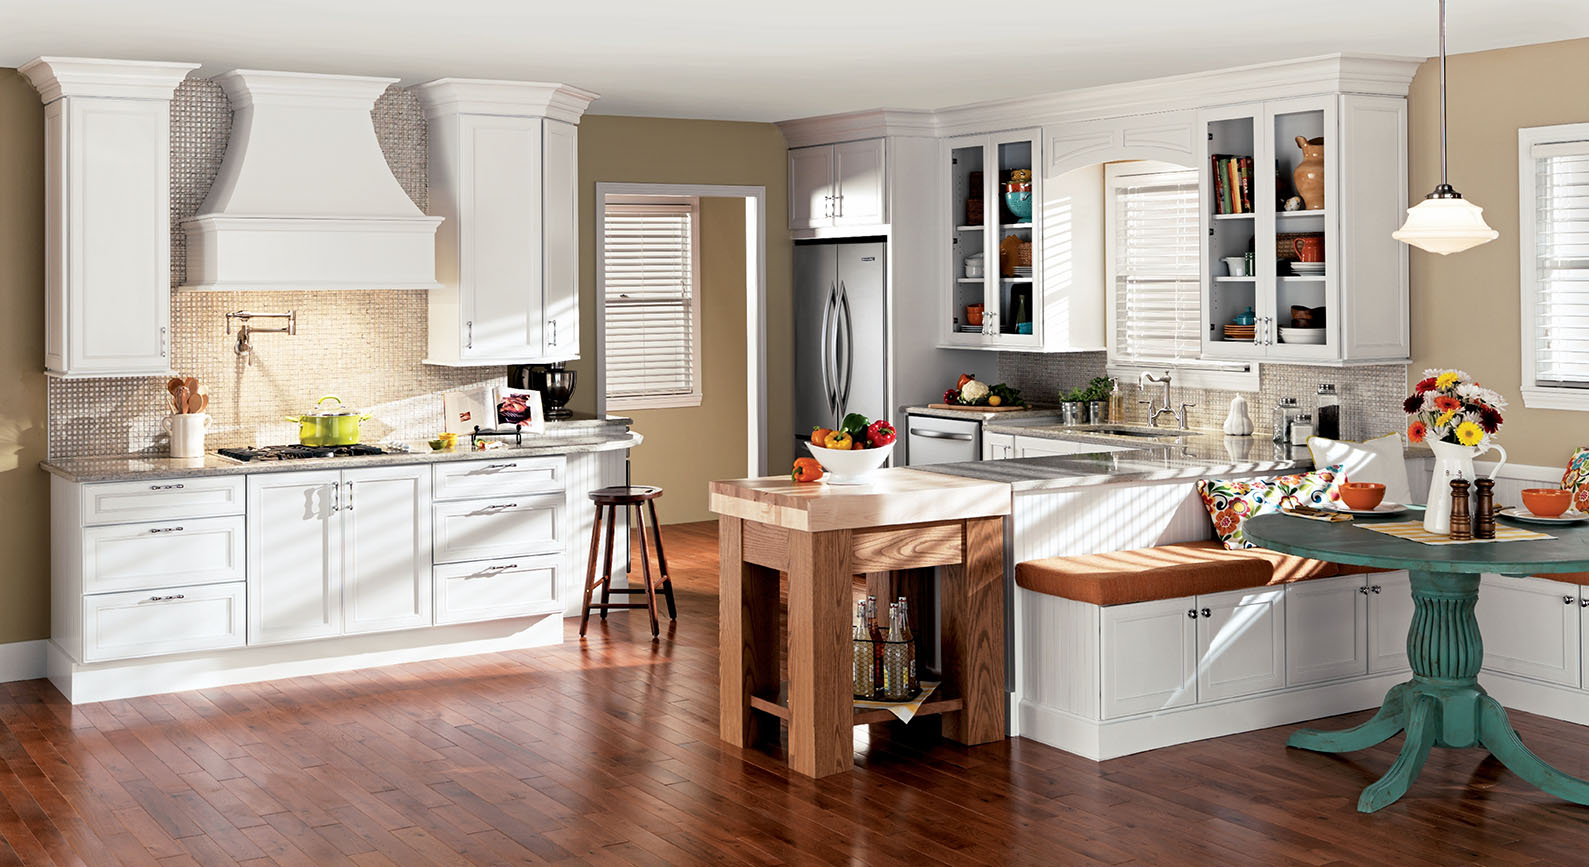 Attirant Kitchen Fads May Come And Go, But White Kitchens Trends Seem To Never Go  Away. A Timeless Look And Universal Appeal, That Is Great For Homes Of All  Ages, ...